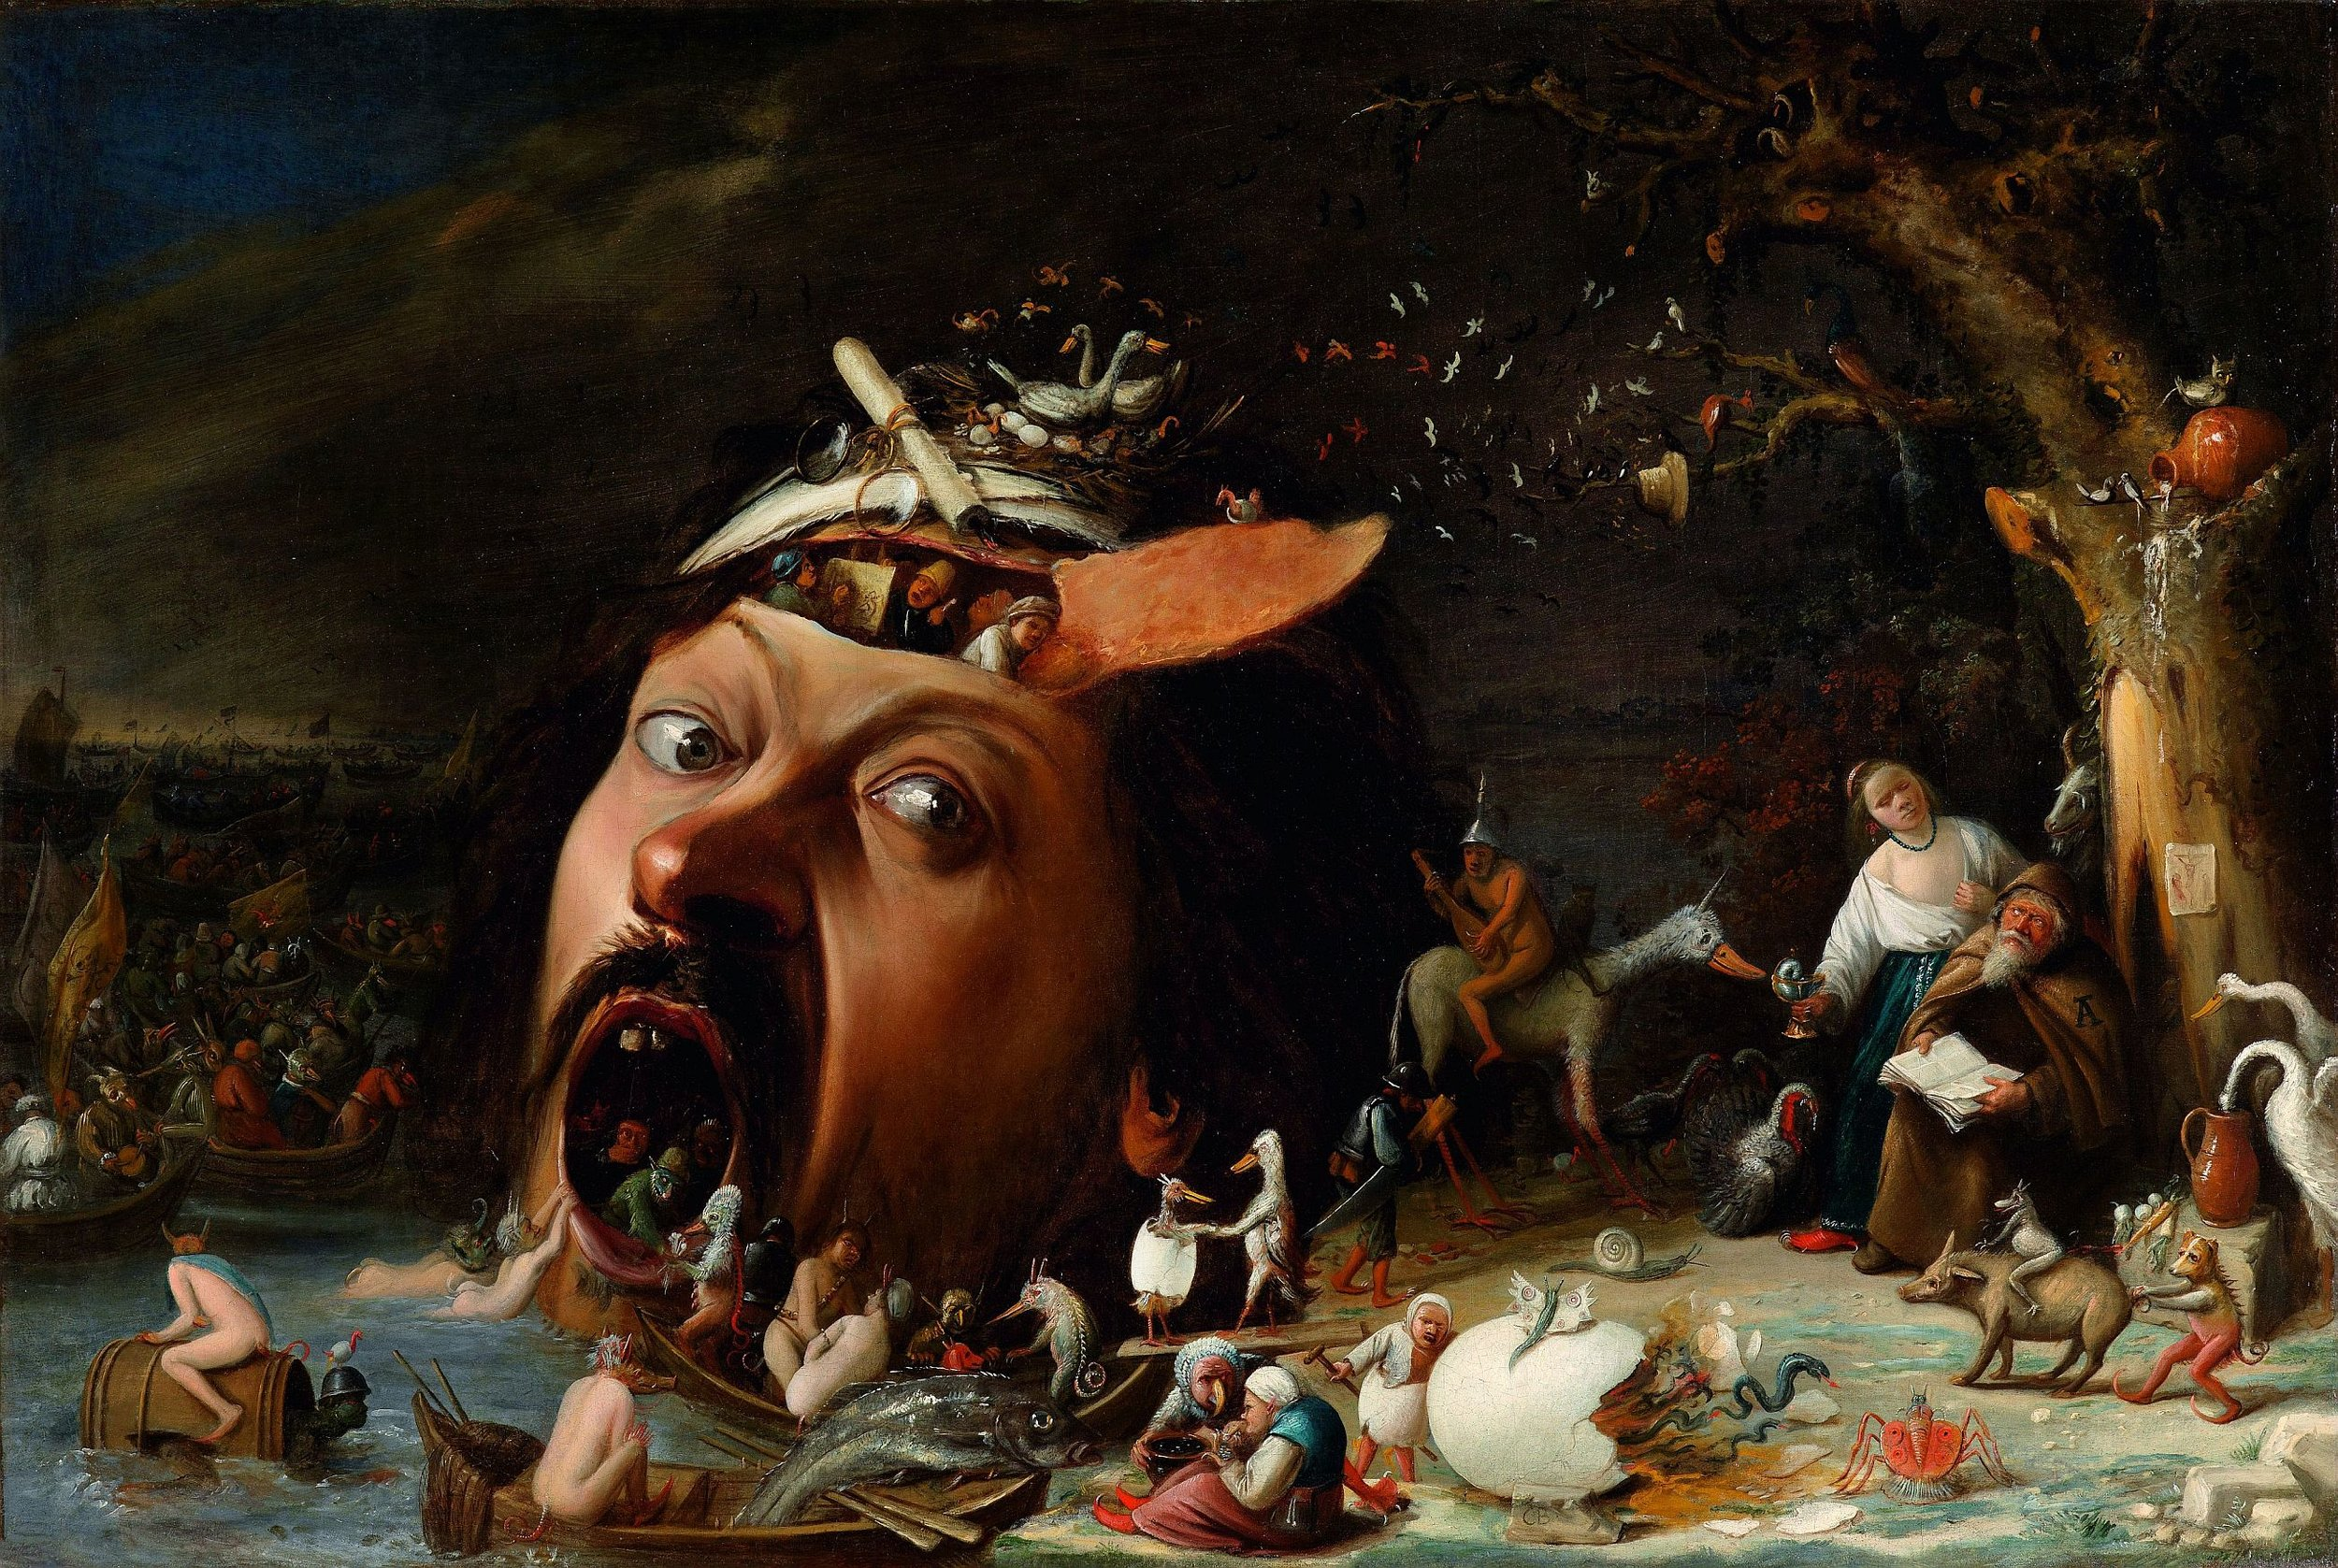 Joos van Craesbeeck (c. 1605/1606-c. 1660),  The Temptation of Saint Anthony  (c. 1650), oil on canvas, 78 x 116 cm. Staatliche Kunsthalle Karlsruhe. Wikimedia Commons.